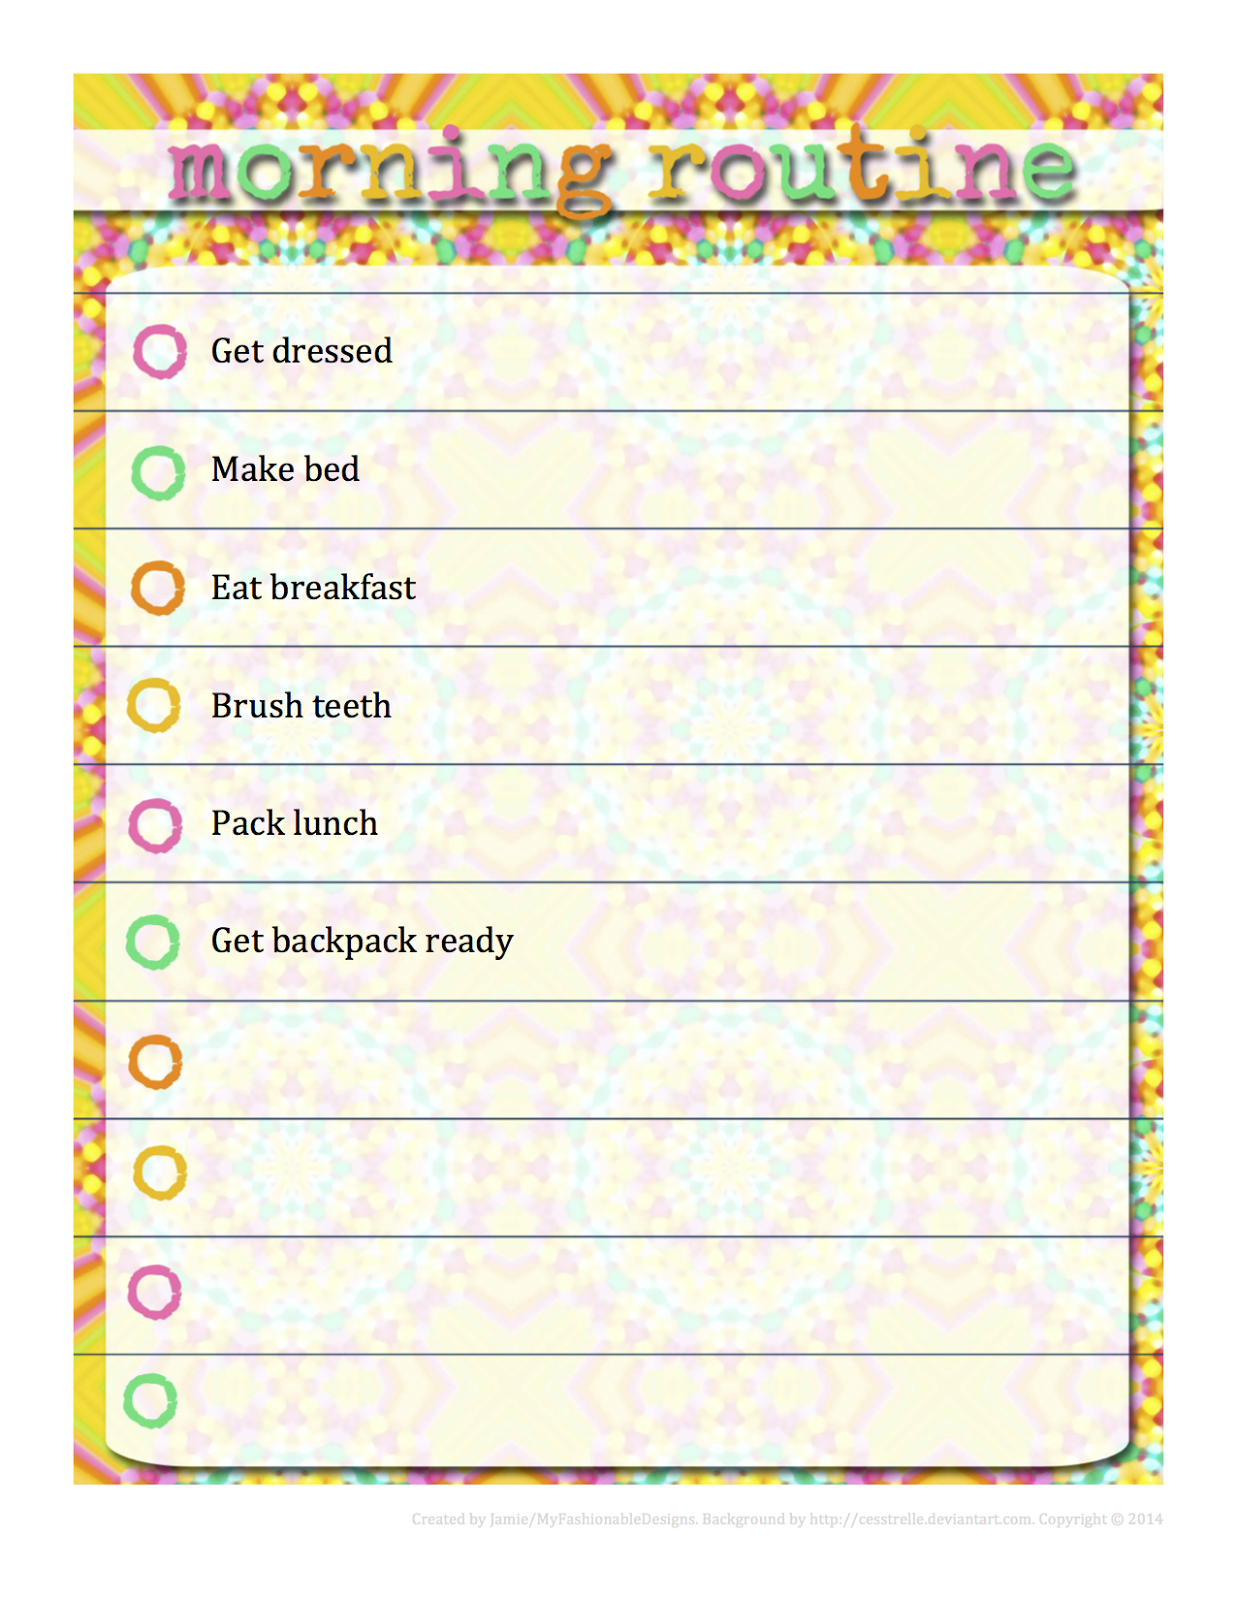 Morning routine chart free download editable in word also kids rh pinterest